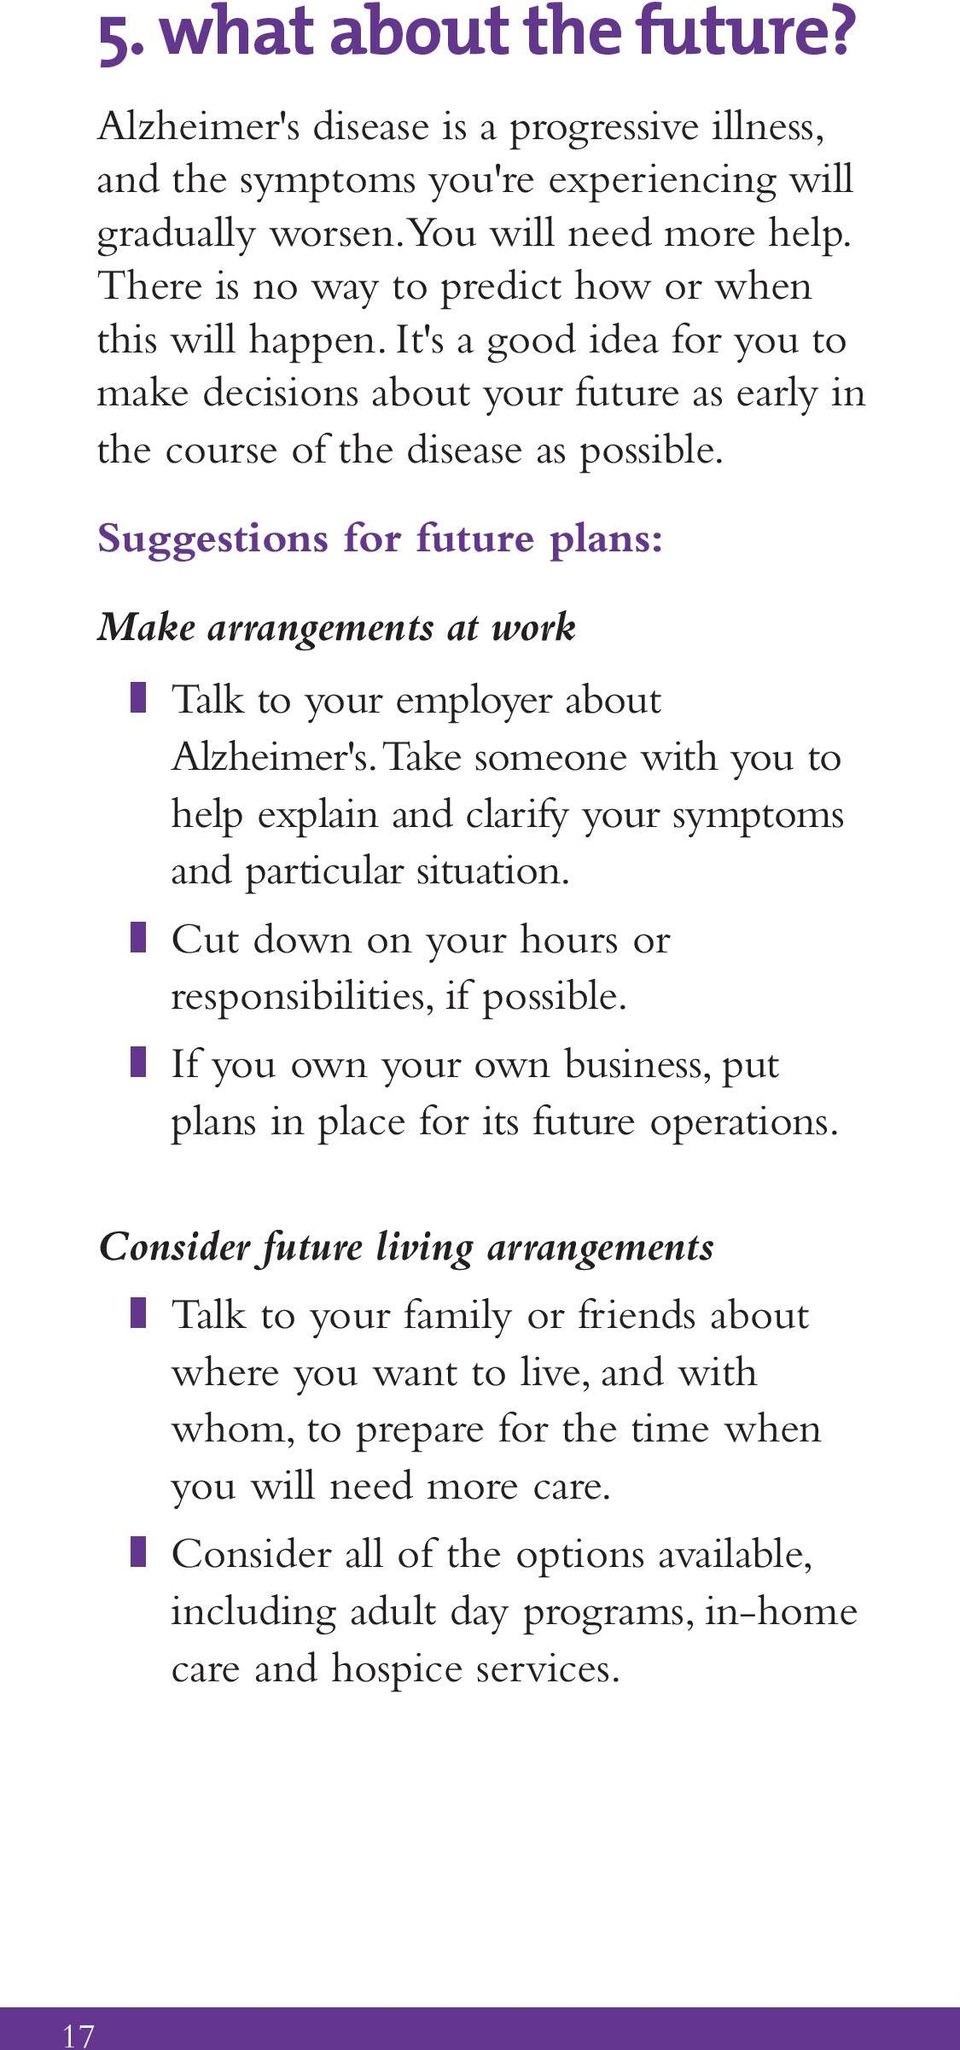 Suggestions for future plans: Make arrangements at work z Talk to your employer about Alzheimer's. Take someone with you to help explain and clarify your symptoms and particular situation.